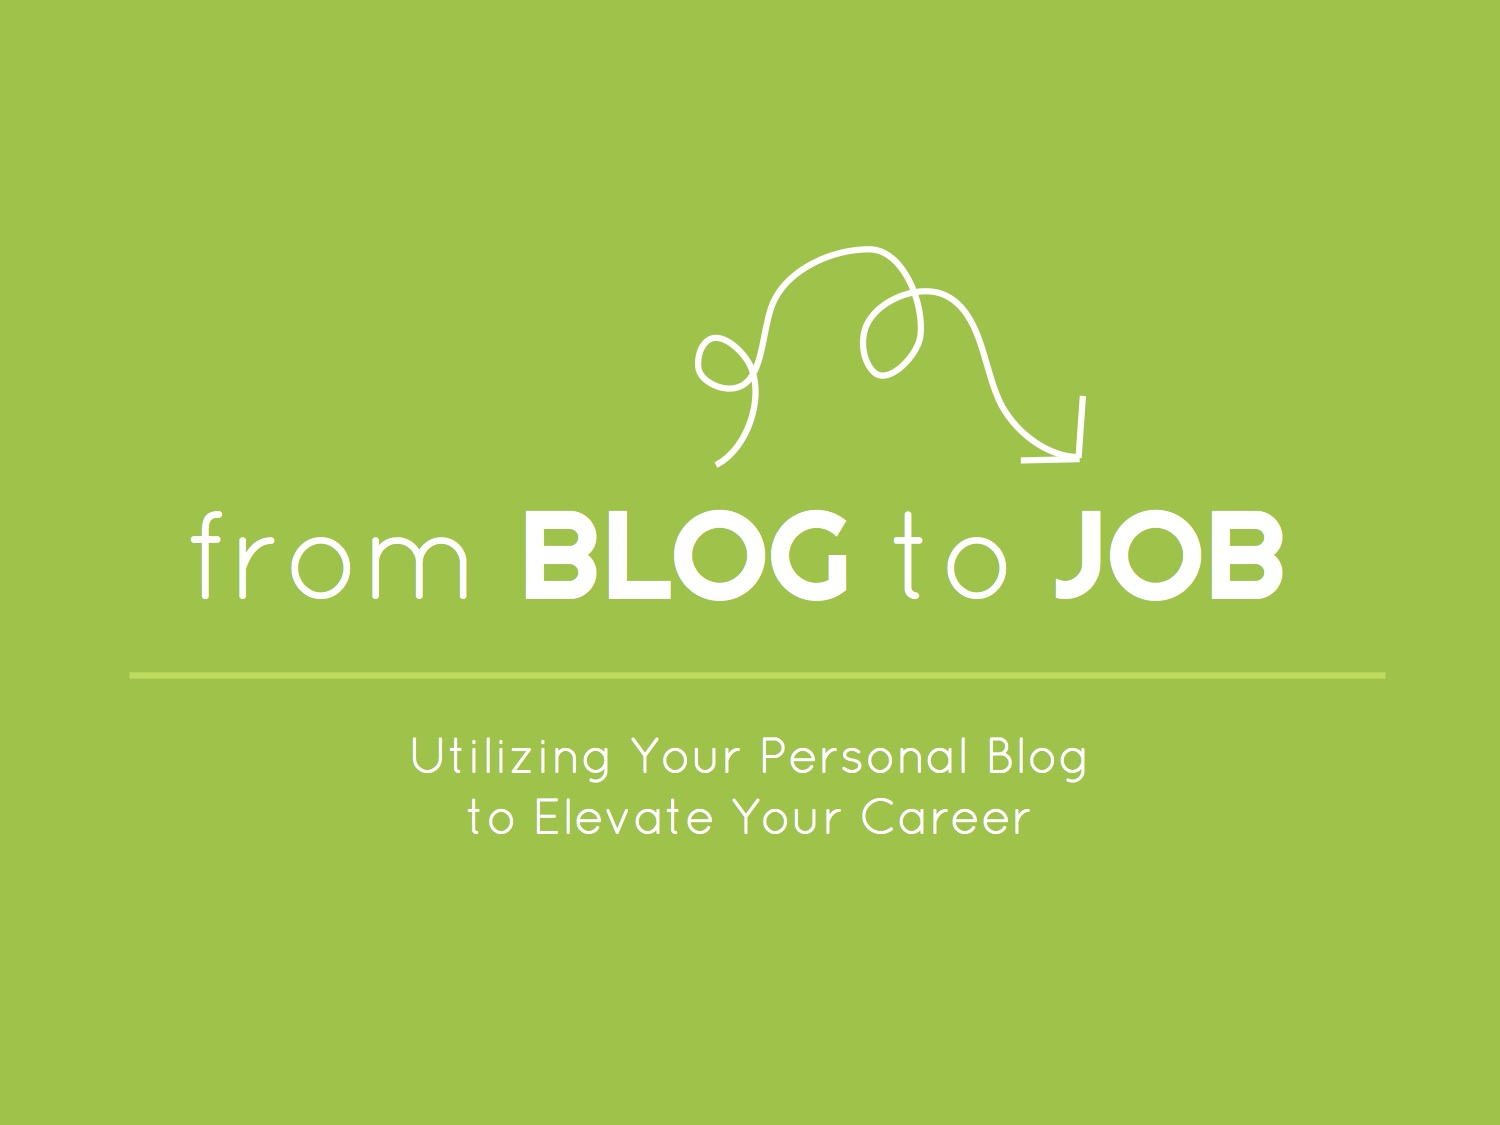 blog to job copy